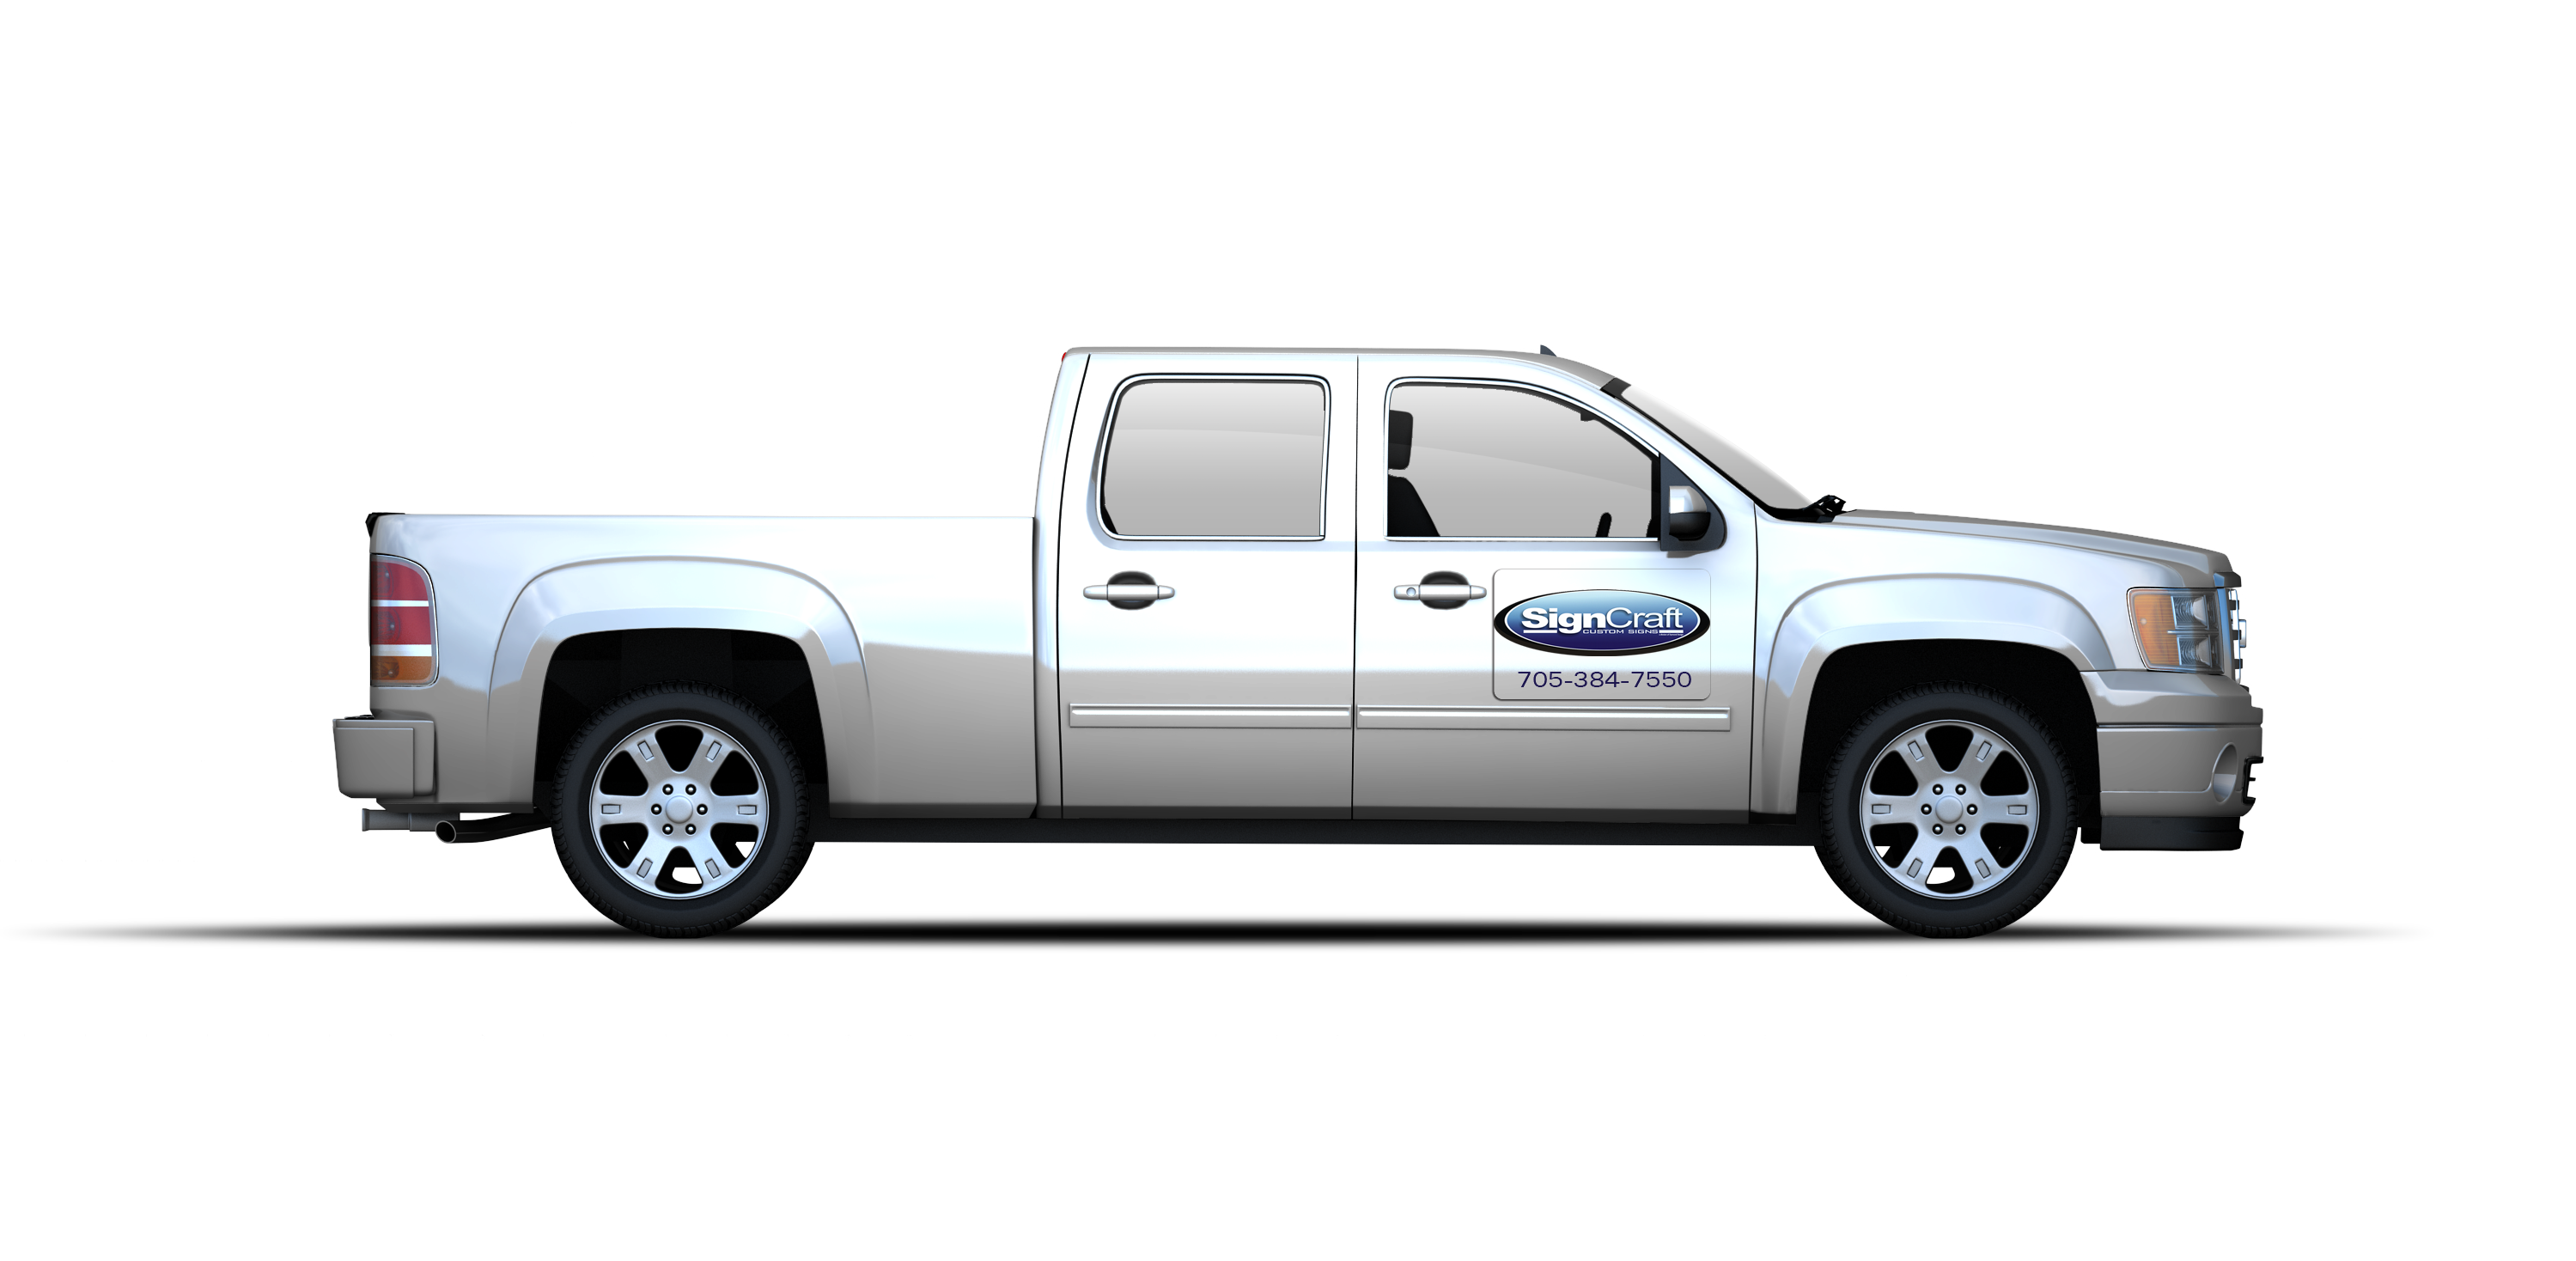 Vehicle Graphics Signcraft Huntsville Parry Sound